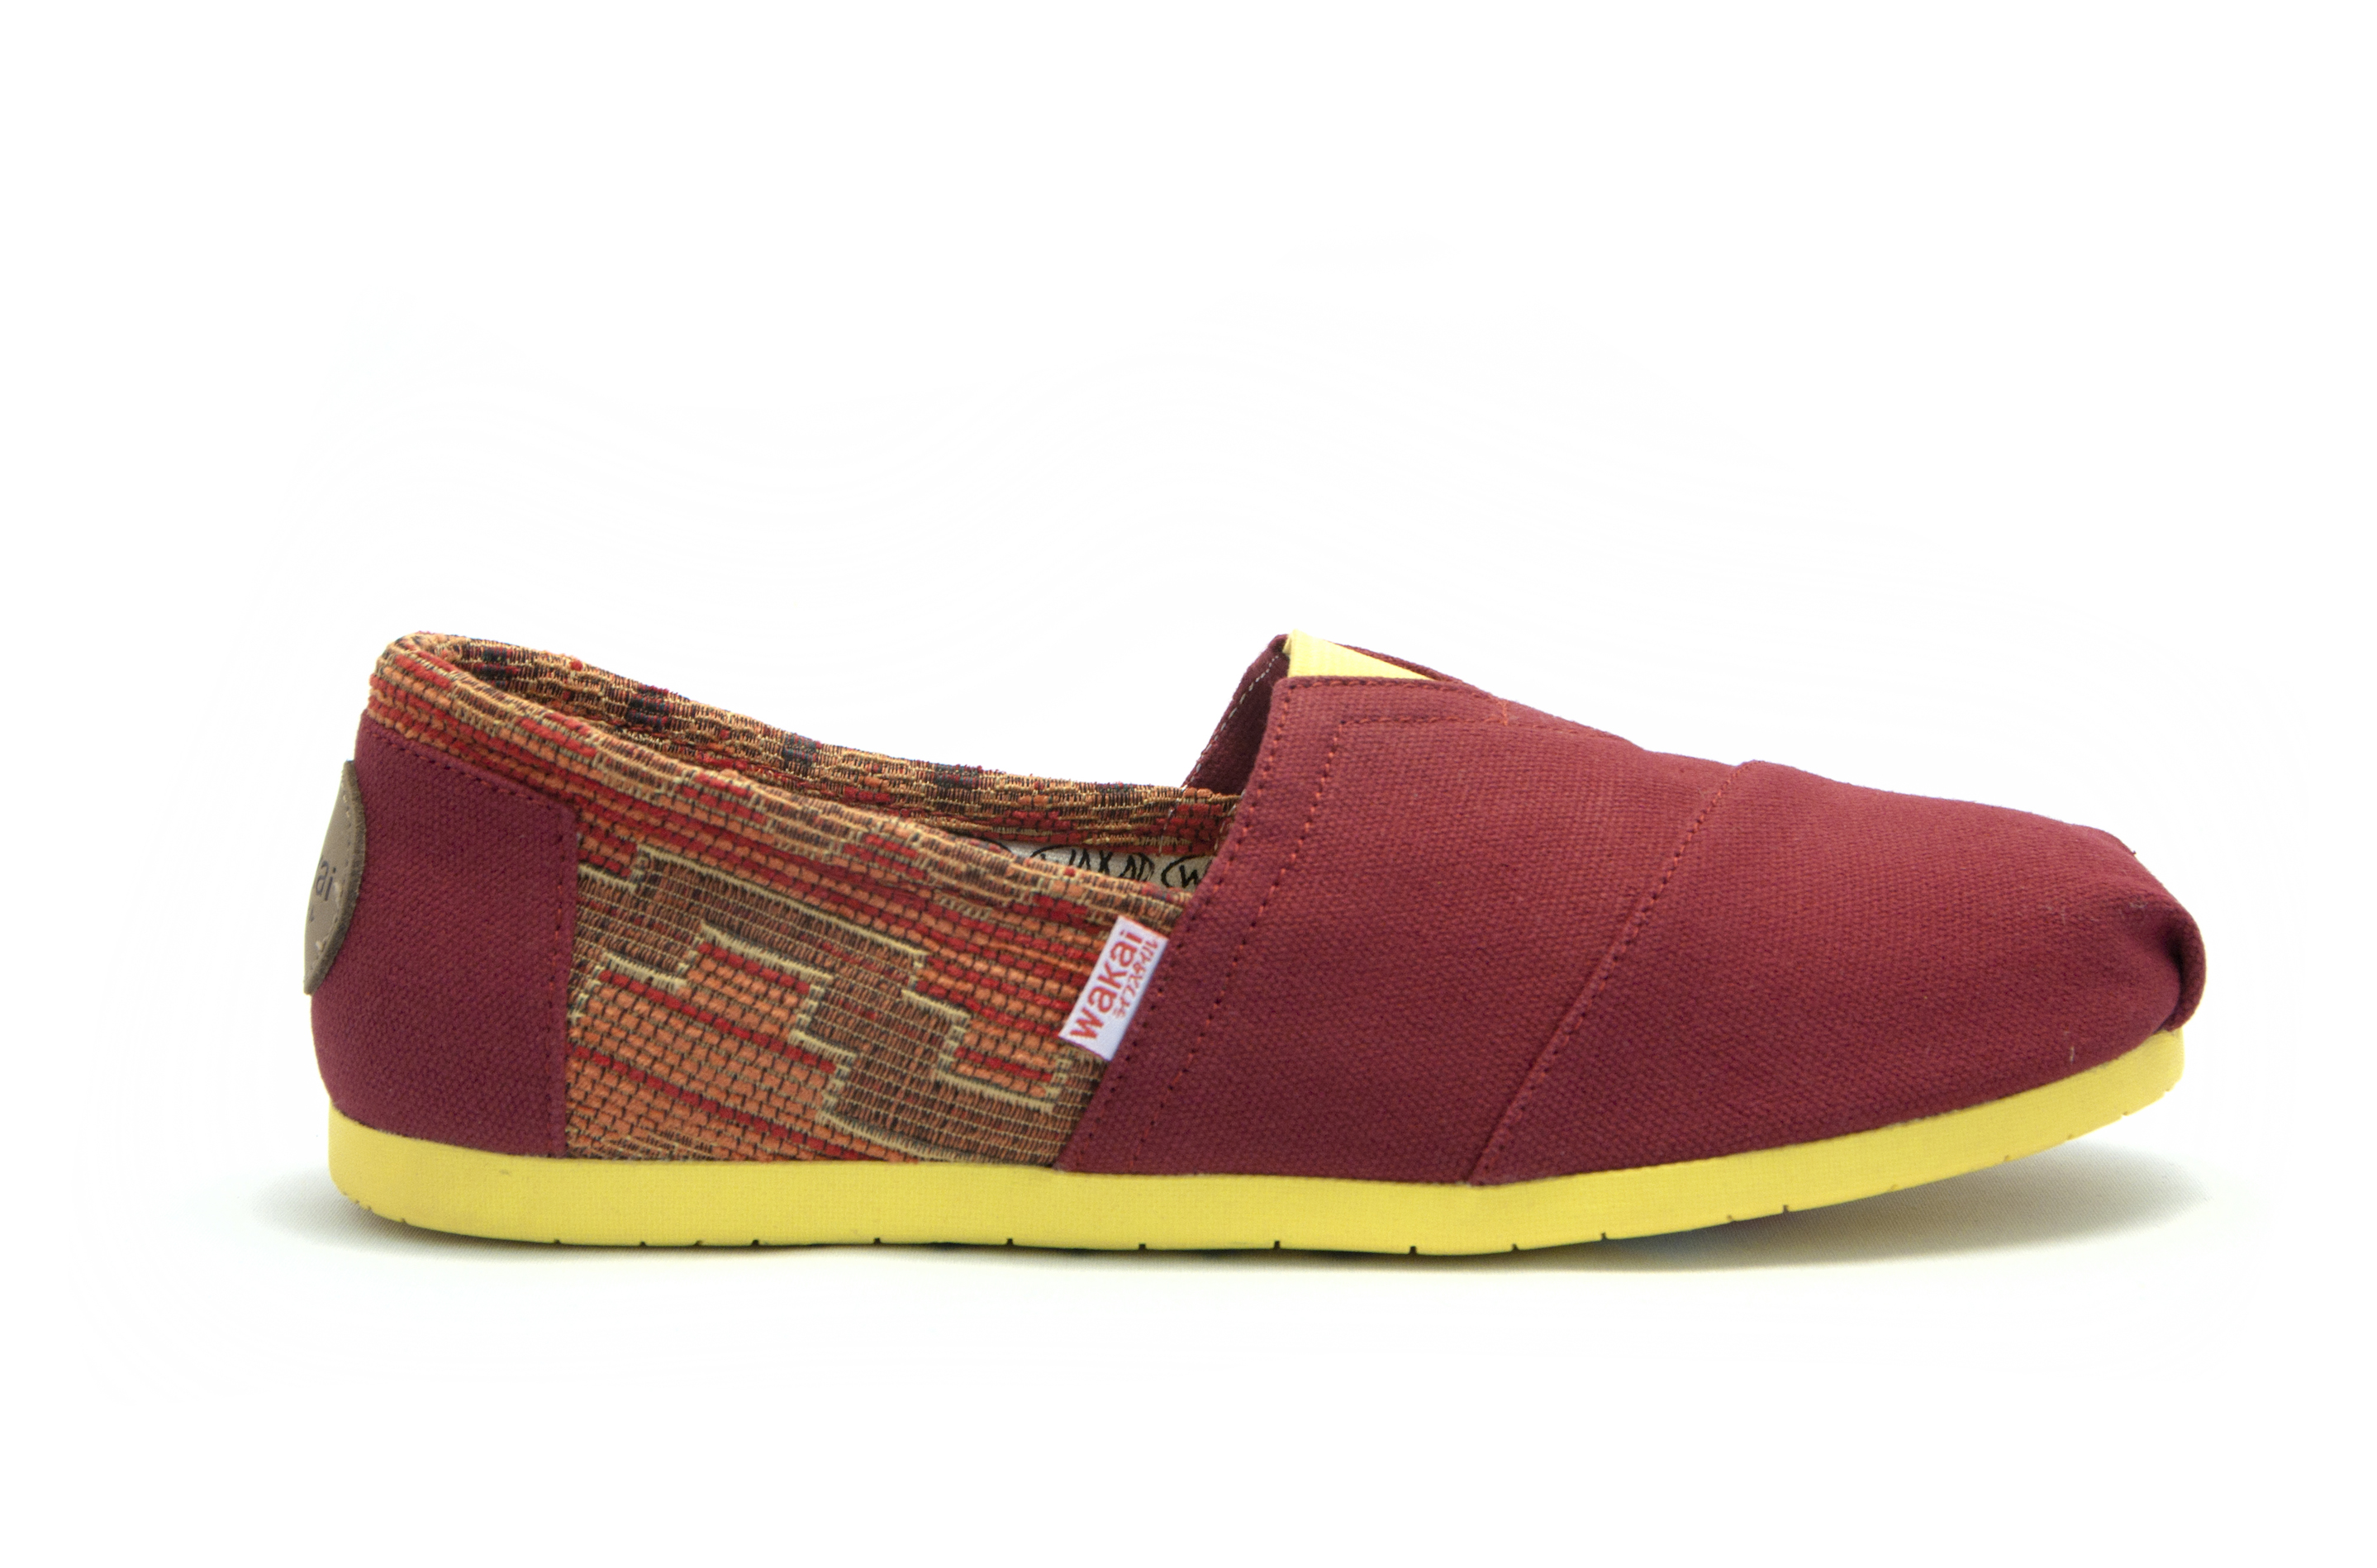 burgundy shoes fil brown summer worn comforter with grey view men when fort socks derby decosse s stripe ribbed side cotton guide suede mens paired in shadow light comfortable stylish gentleman gazette